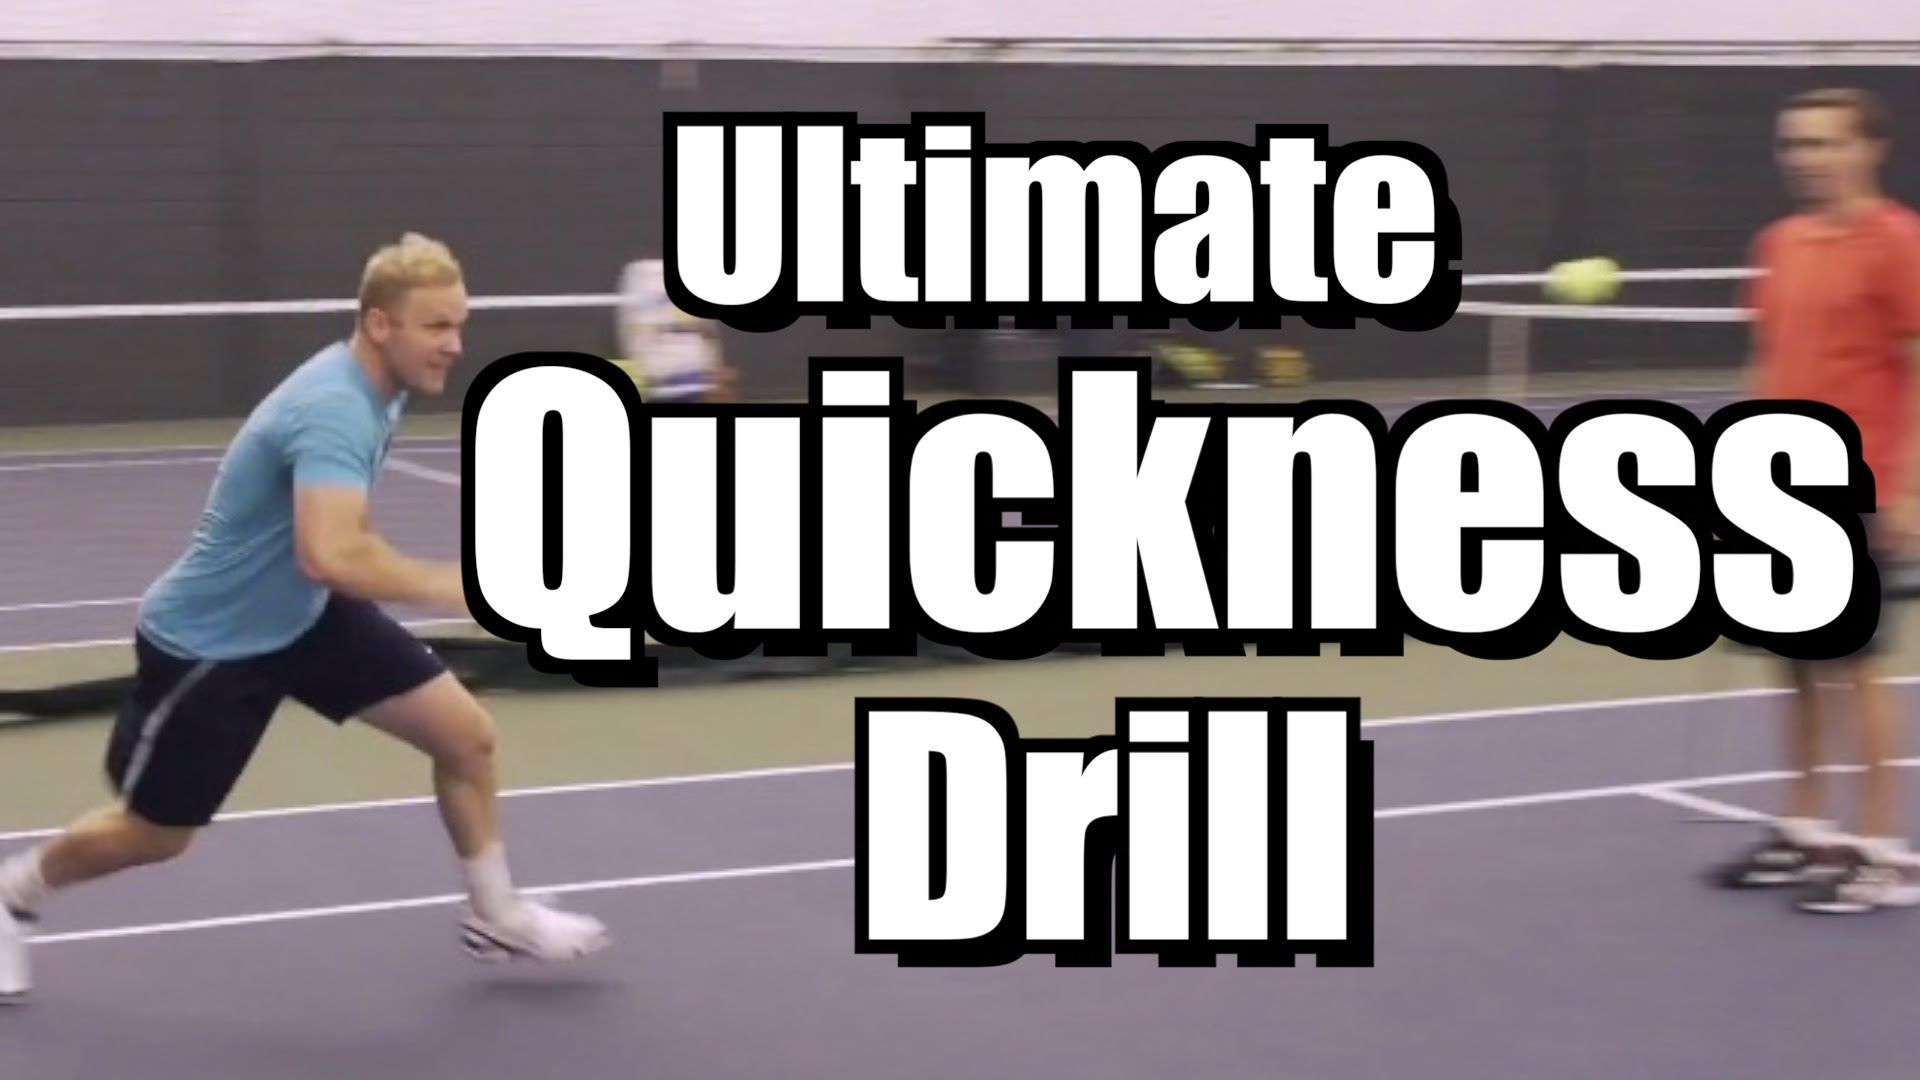 Ultimate Quickness Drill Tennis Lessons and Instruction